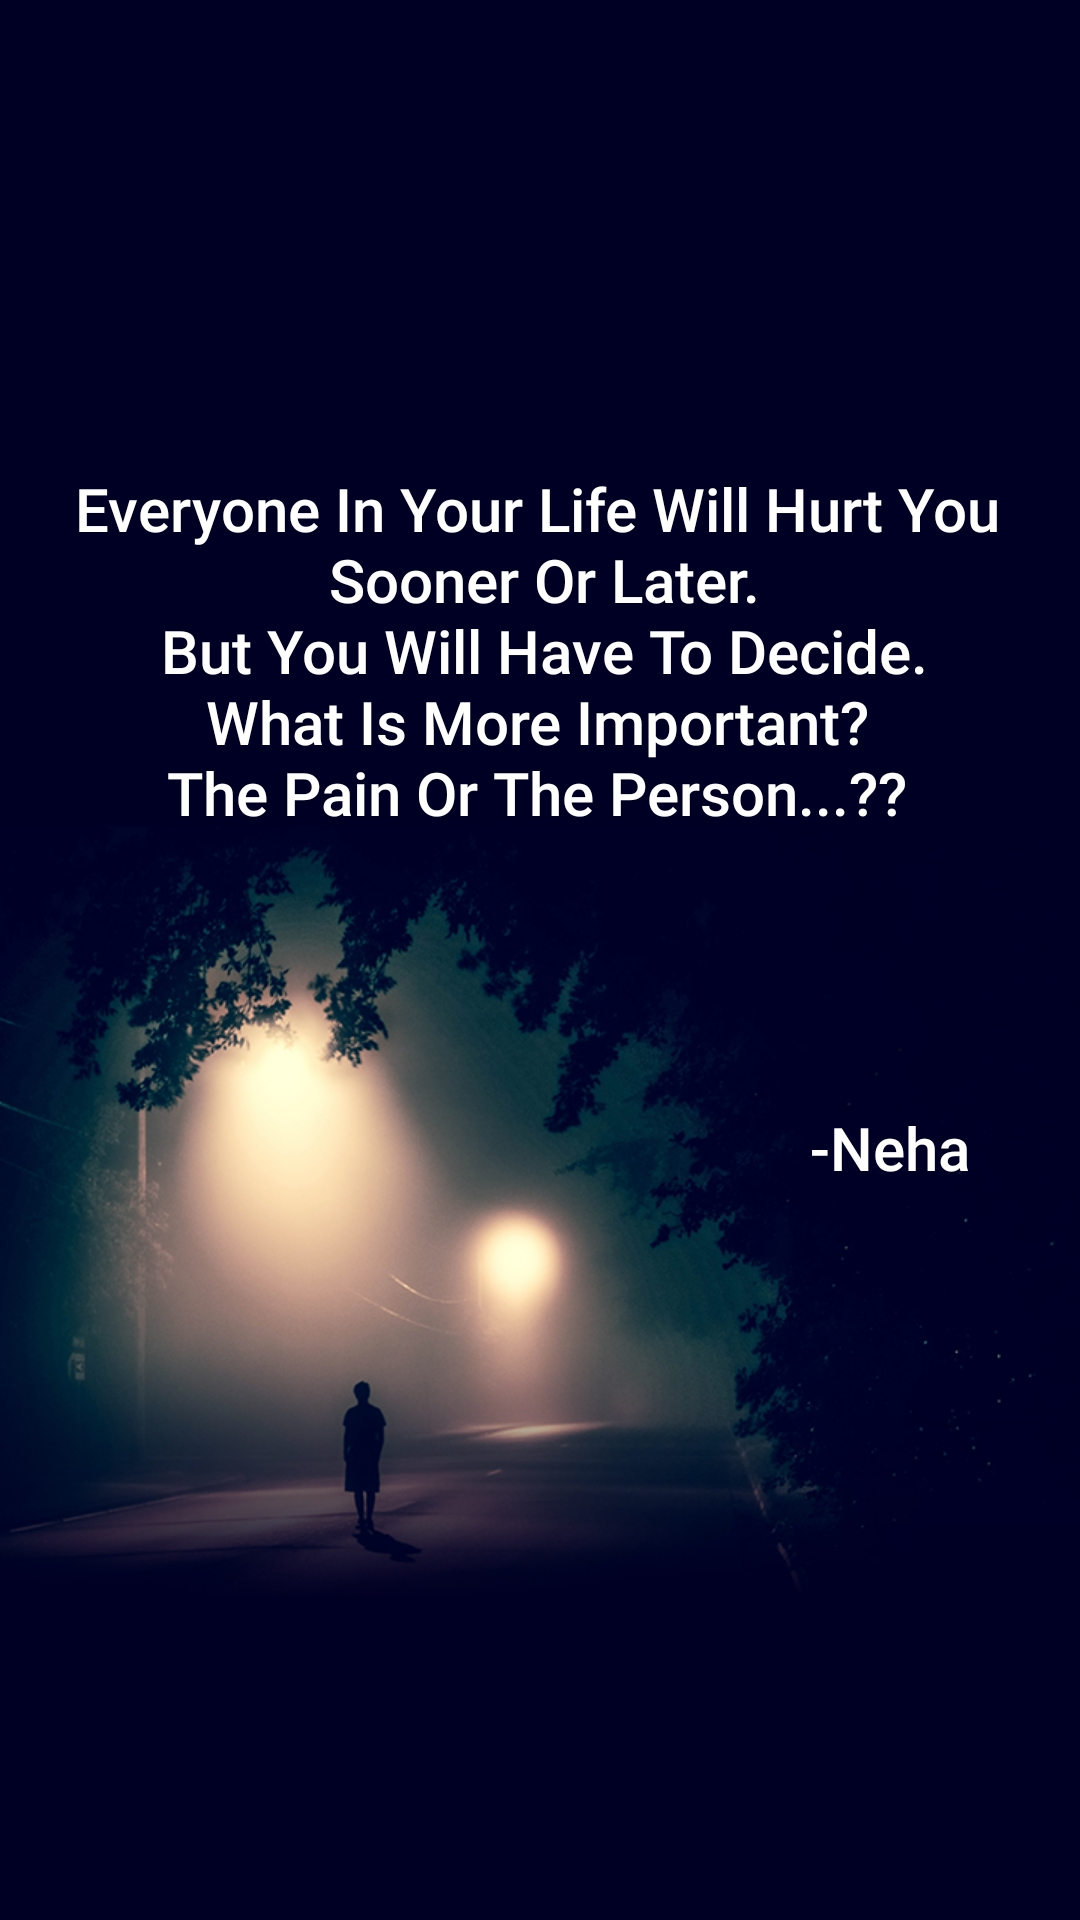 Everyone In Your Life Will Hurt You  Sooner Or Later.  But You Will Have To Decide.  What Is More Important?  The Pain Or The Person...??                                                    -Neha